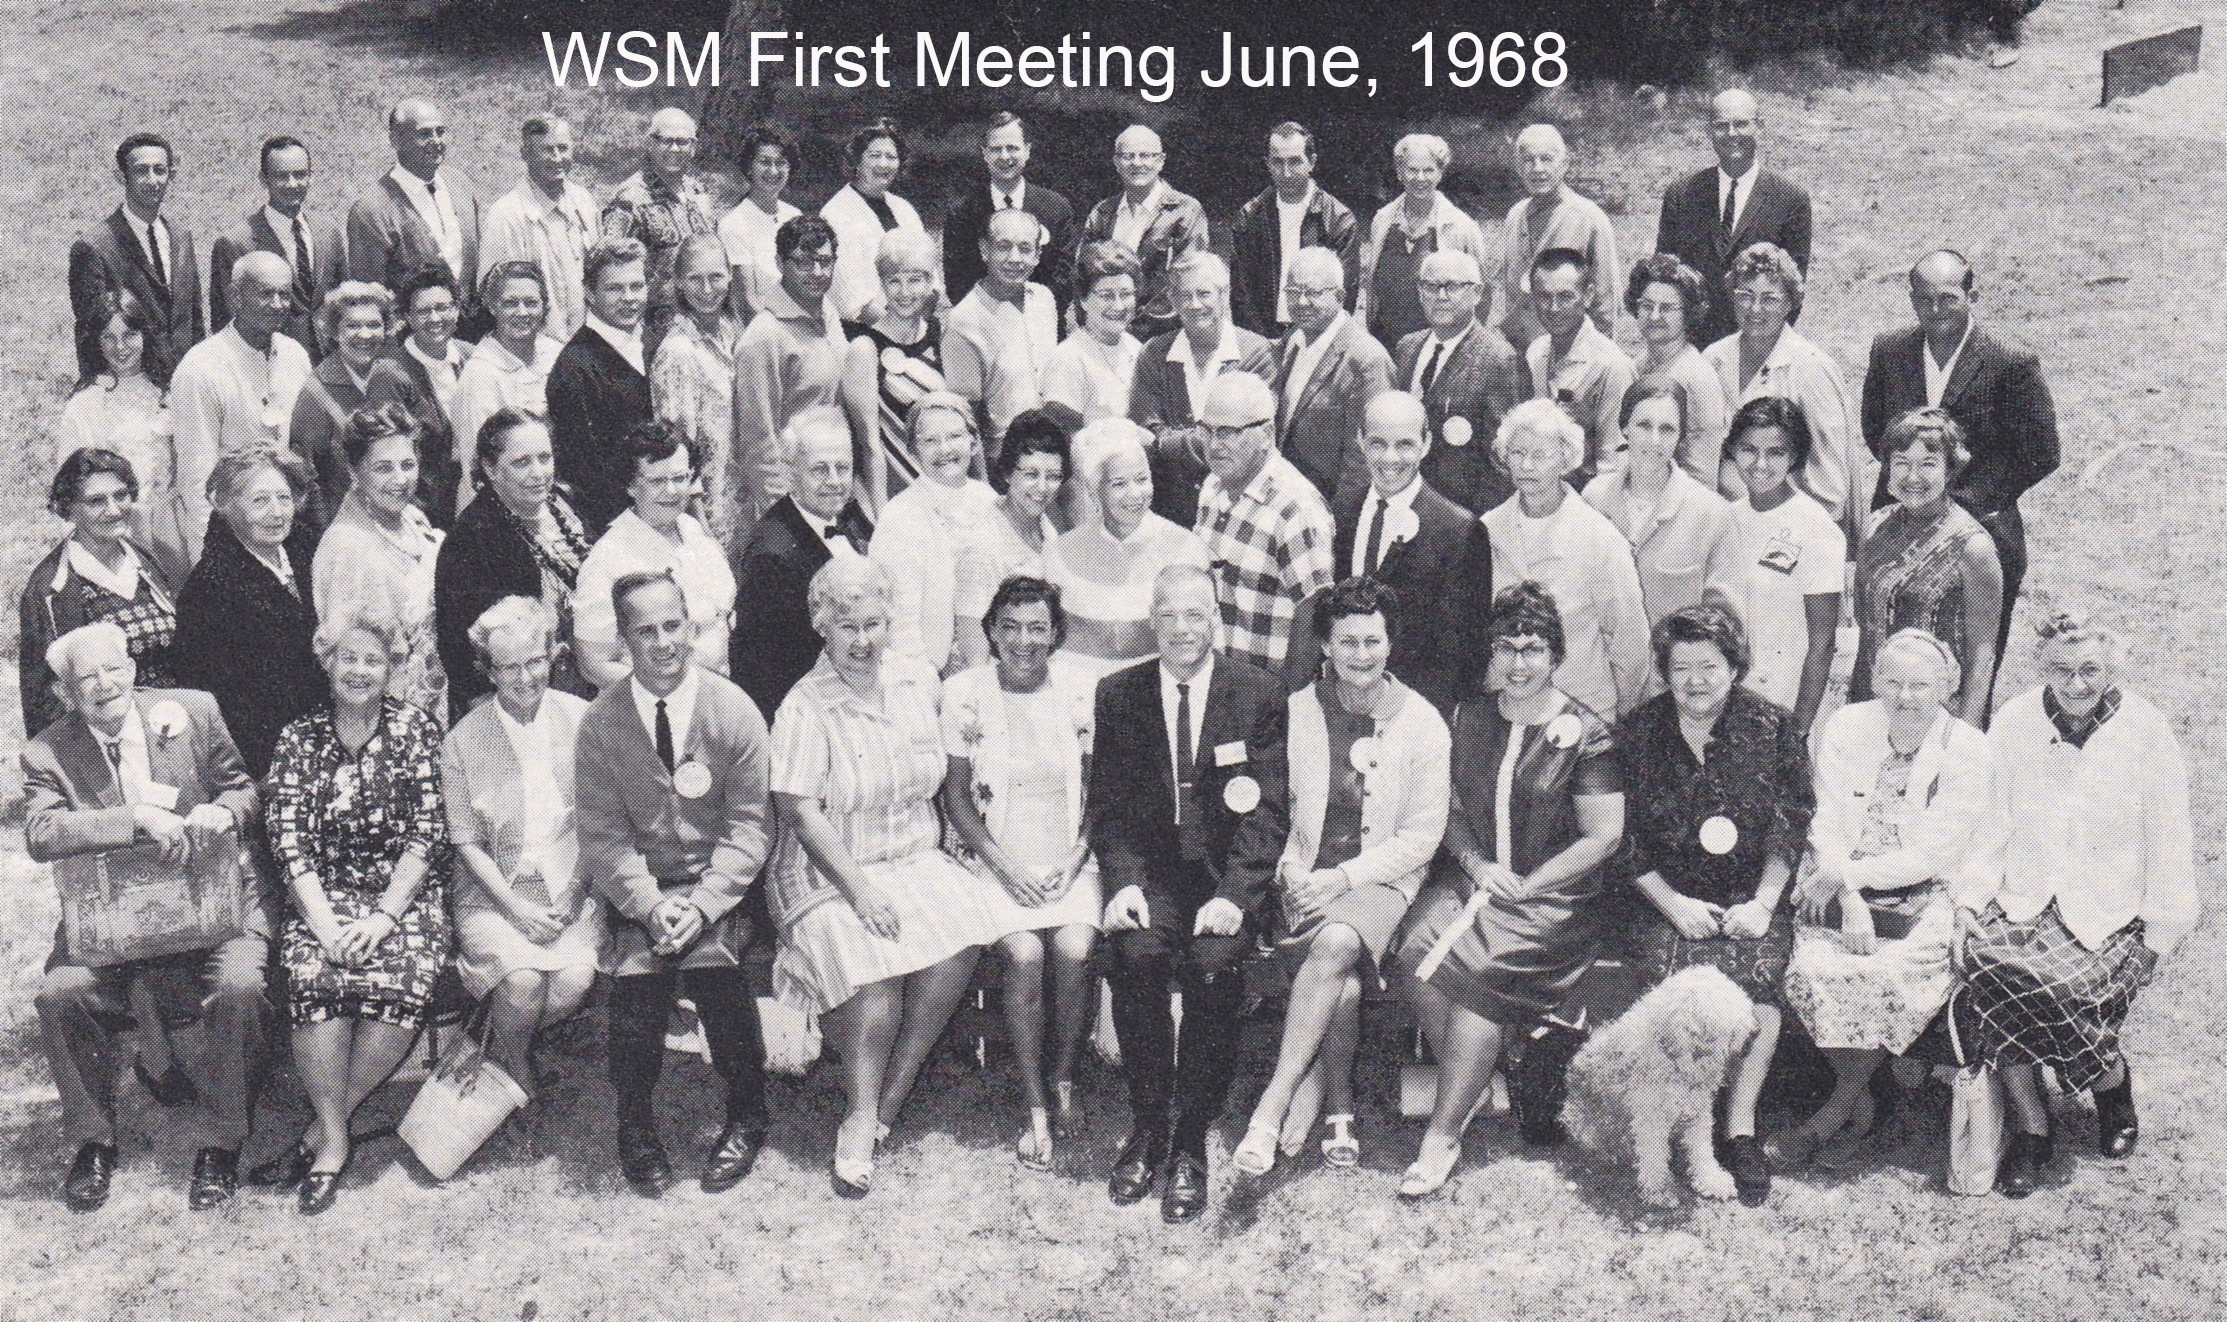 Group Photo WSM June 1968 First Annual Meeting The Echo 1 p16